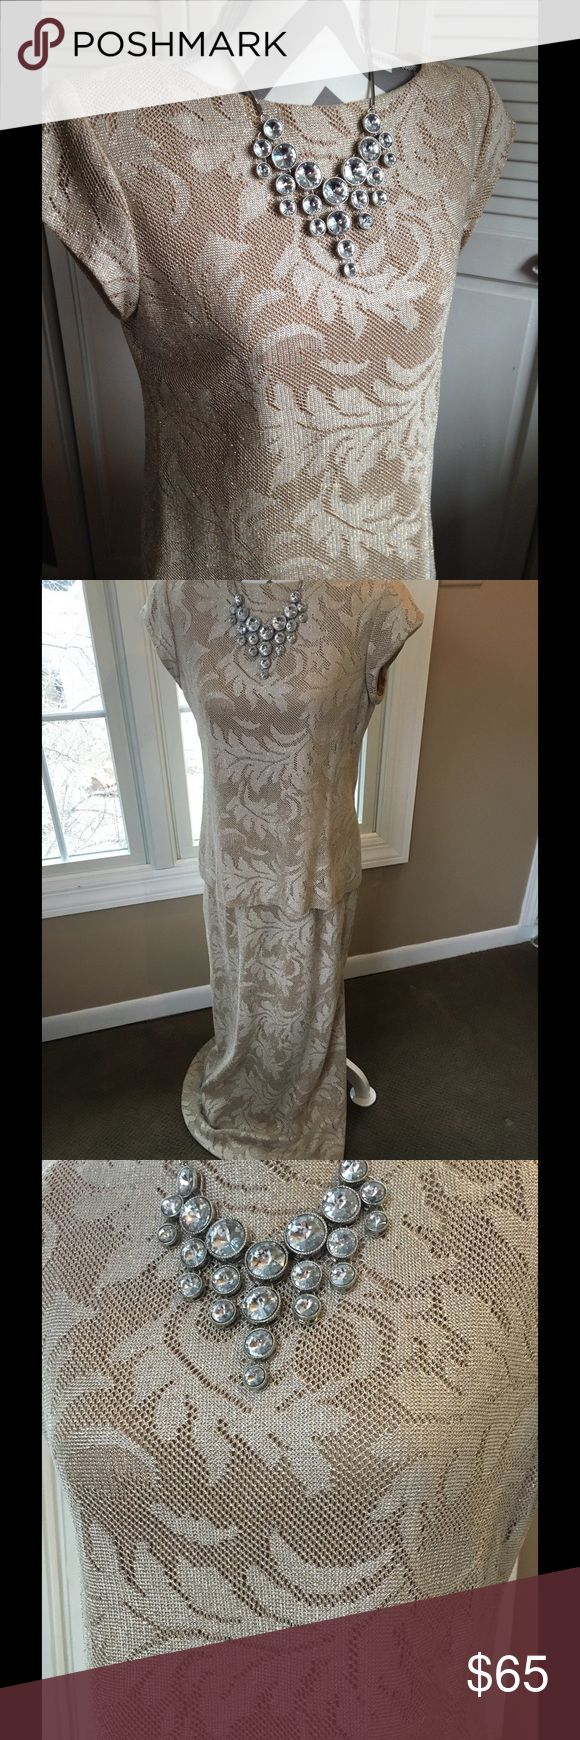 Wedding attire Gorgeous gold evening gown/mother of bride. huey waltzer for saks fifth avenue Dresses Wedding